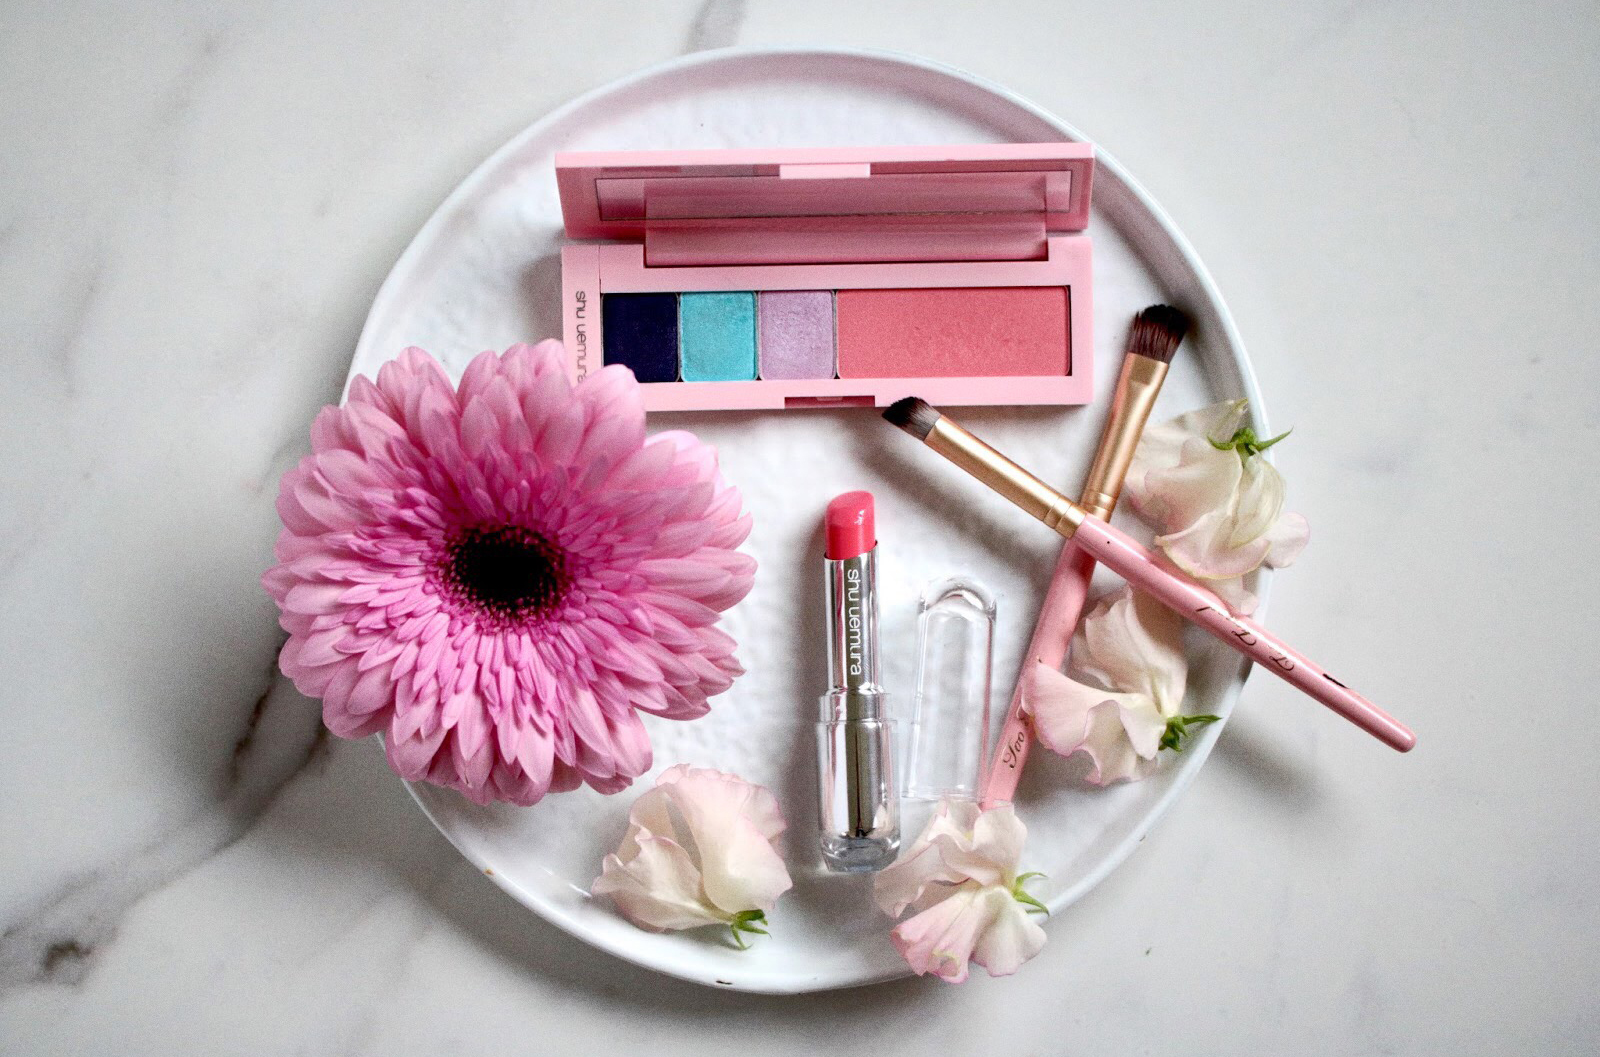 shu uemura play date maquillage make up spring printemps 217 swatches